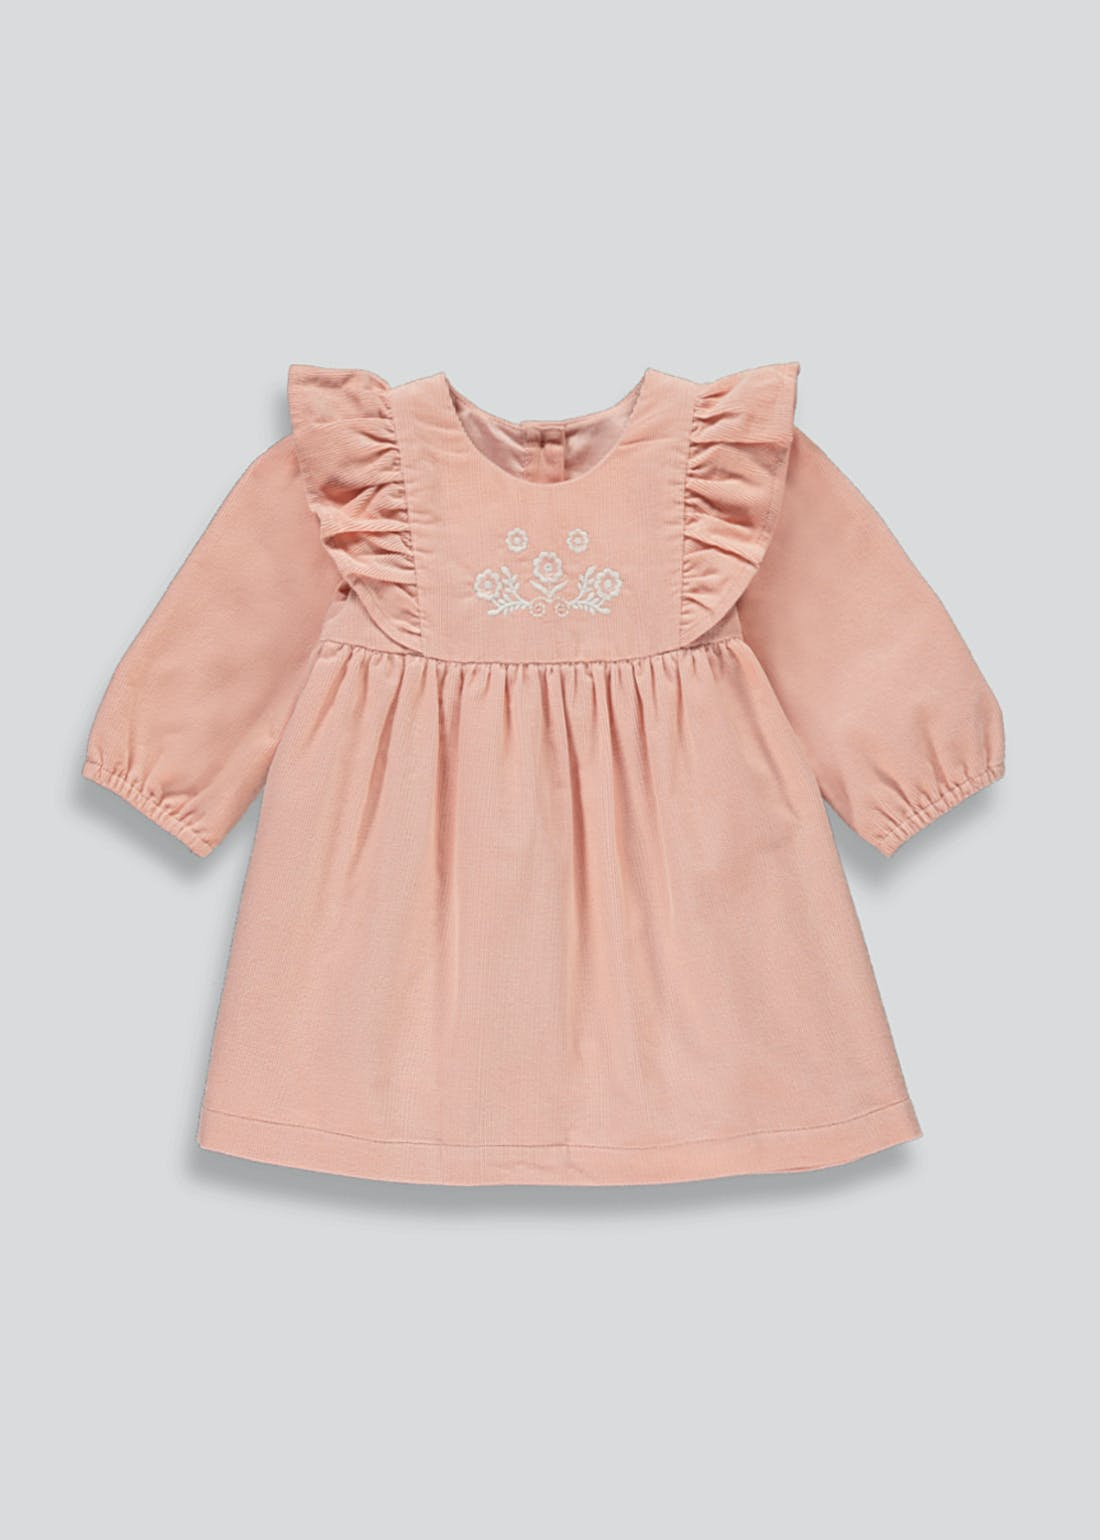 Girls Pink Long Sleeve Cord Dress (Tiny Baby-23mths)